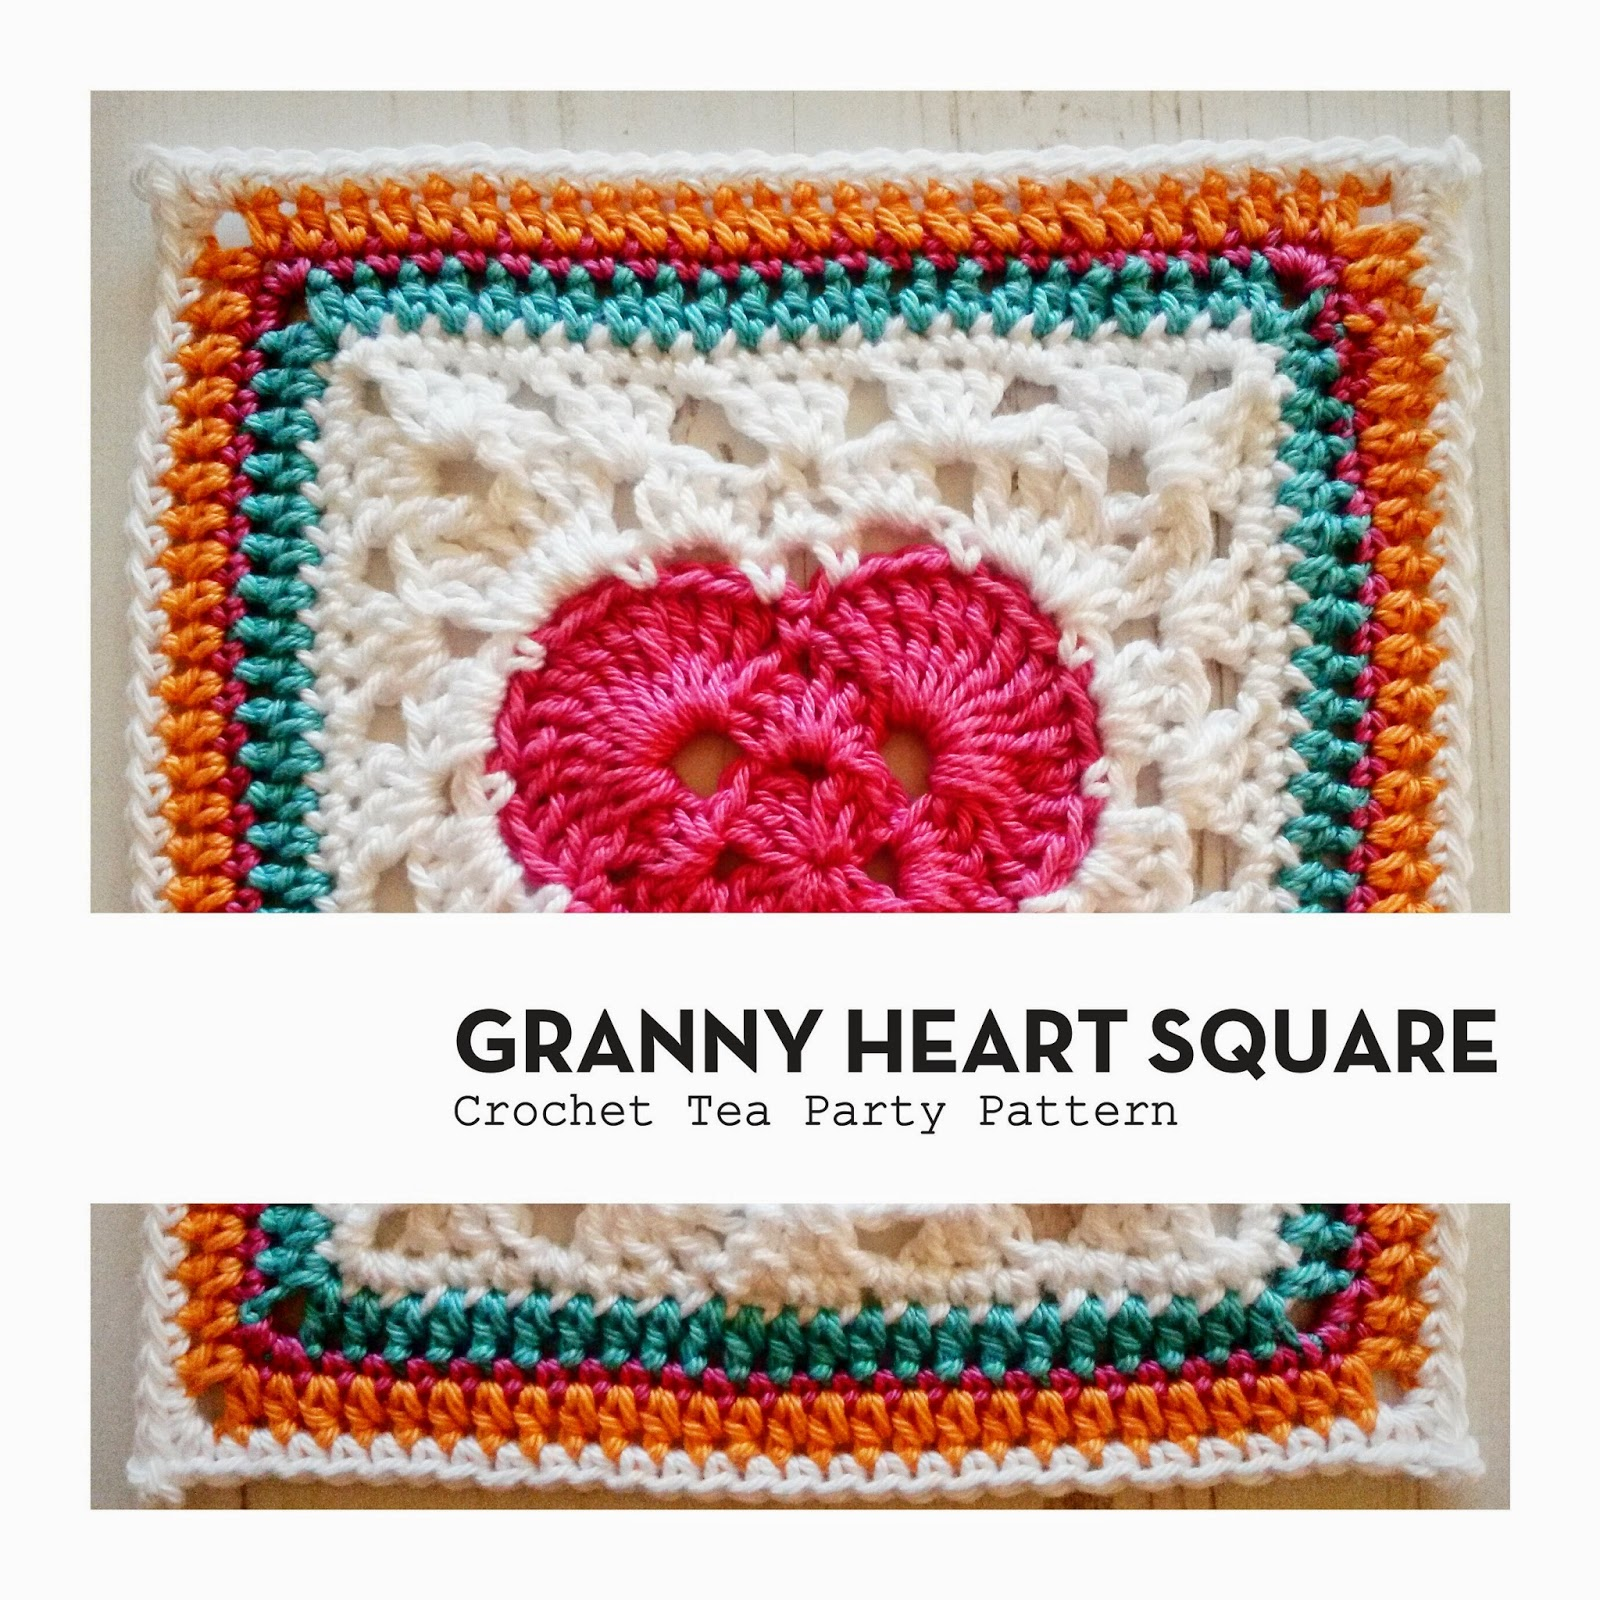 Crochet Tea Party :: Granny Heart Square Pattern